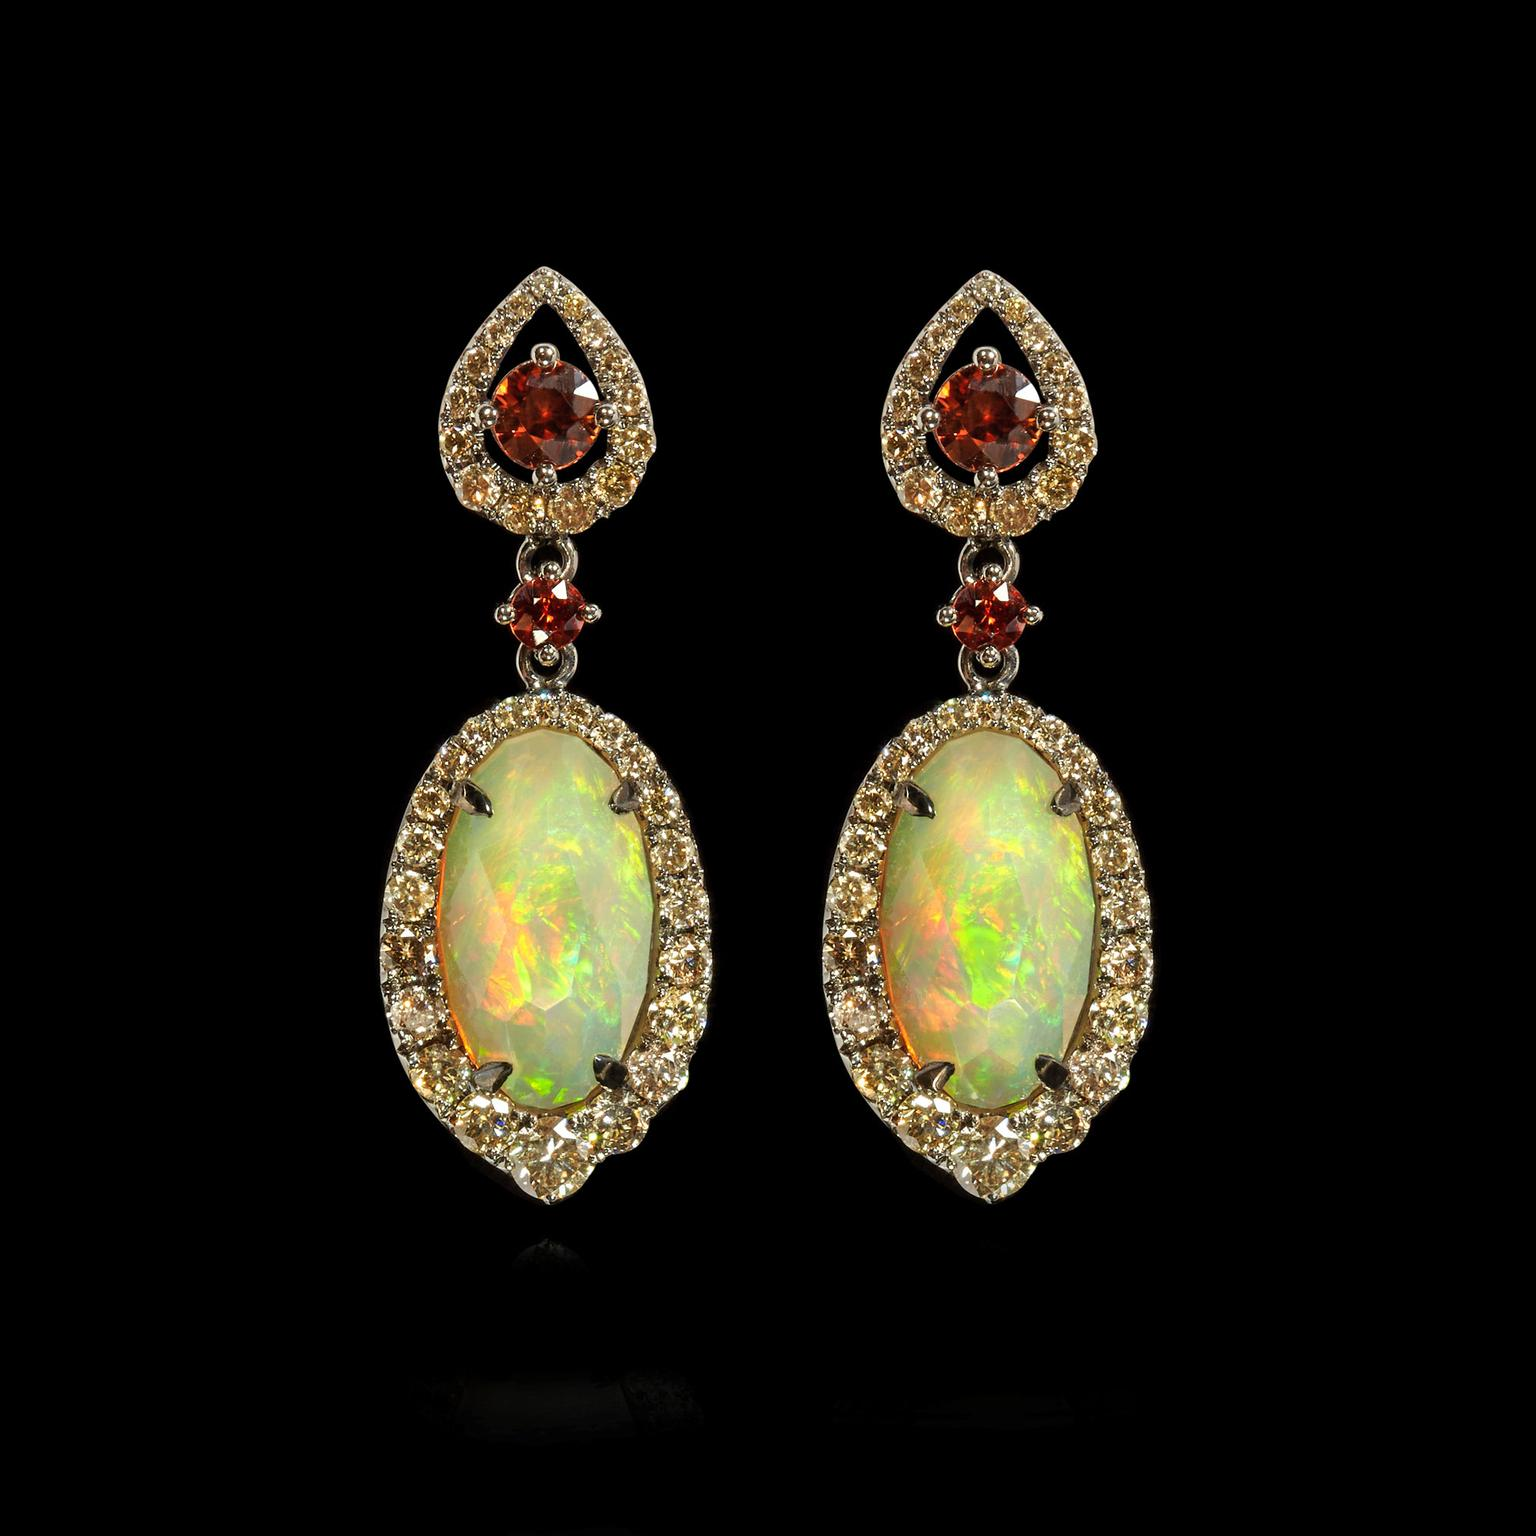 Annoushka opal earrings